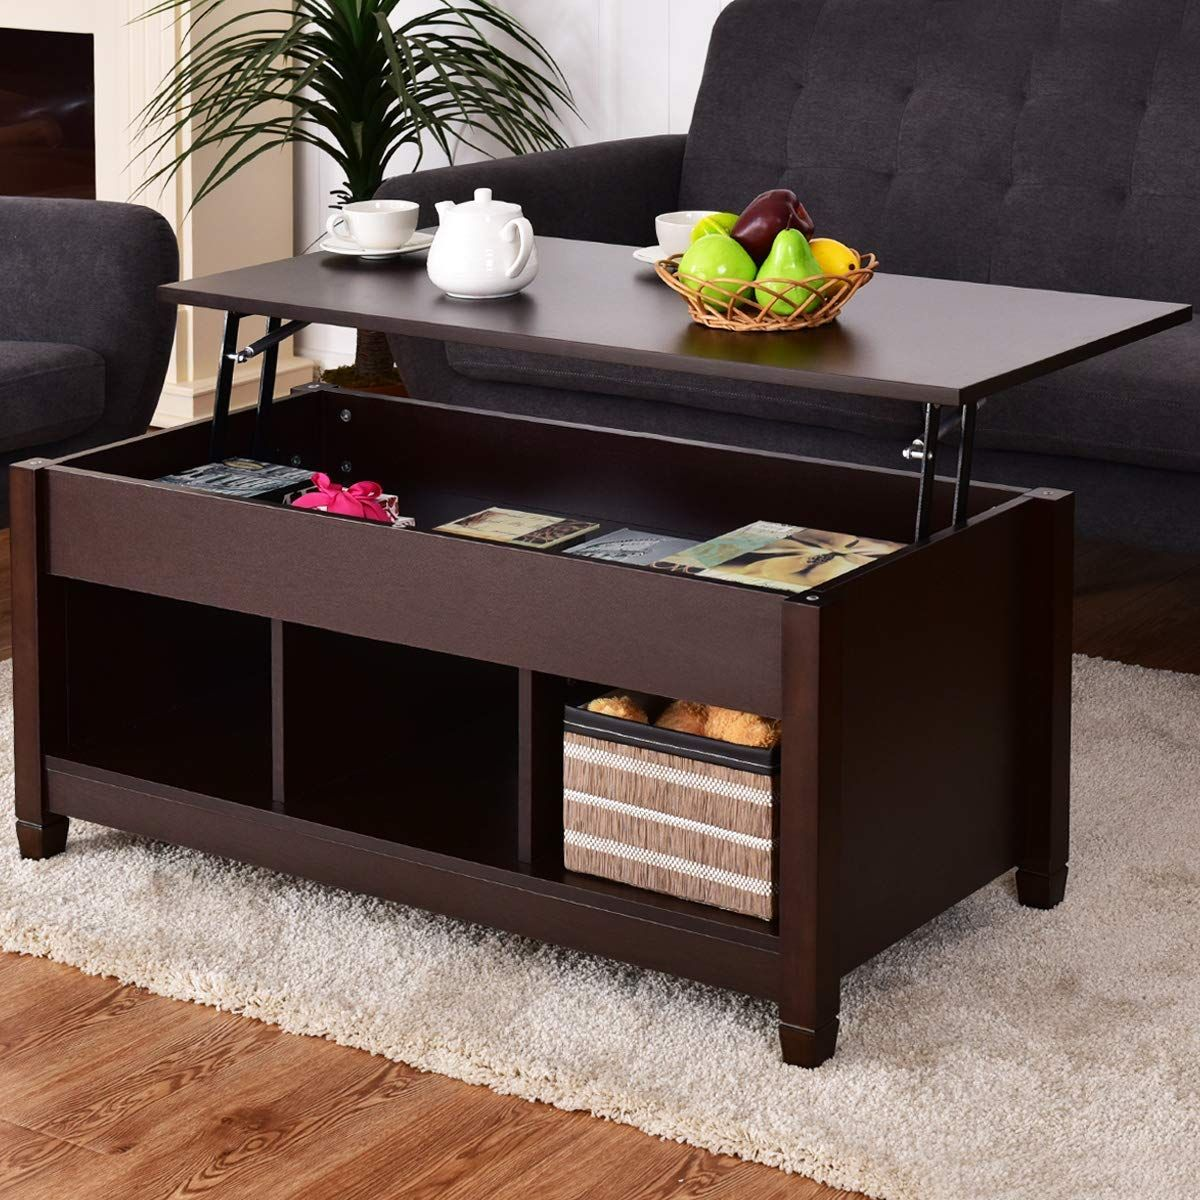 Dark Brown Mid Century Modern Lift Top Coffee Table Modern Furniture Living Room Coffee Table With Storage